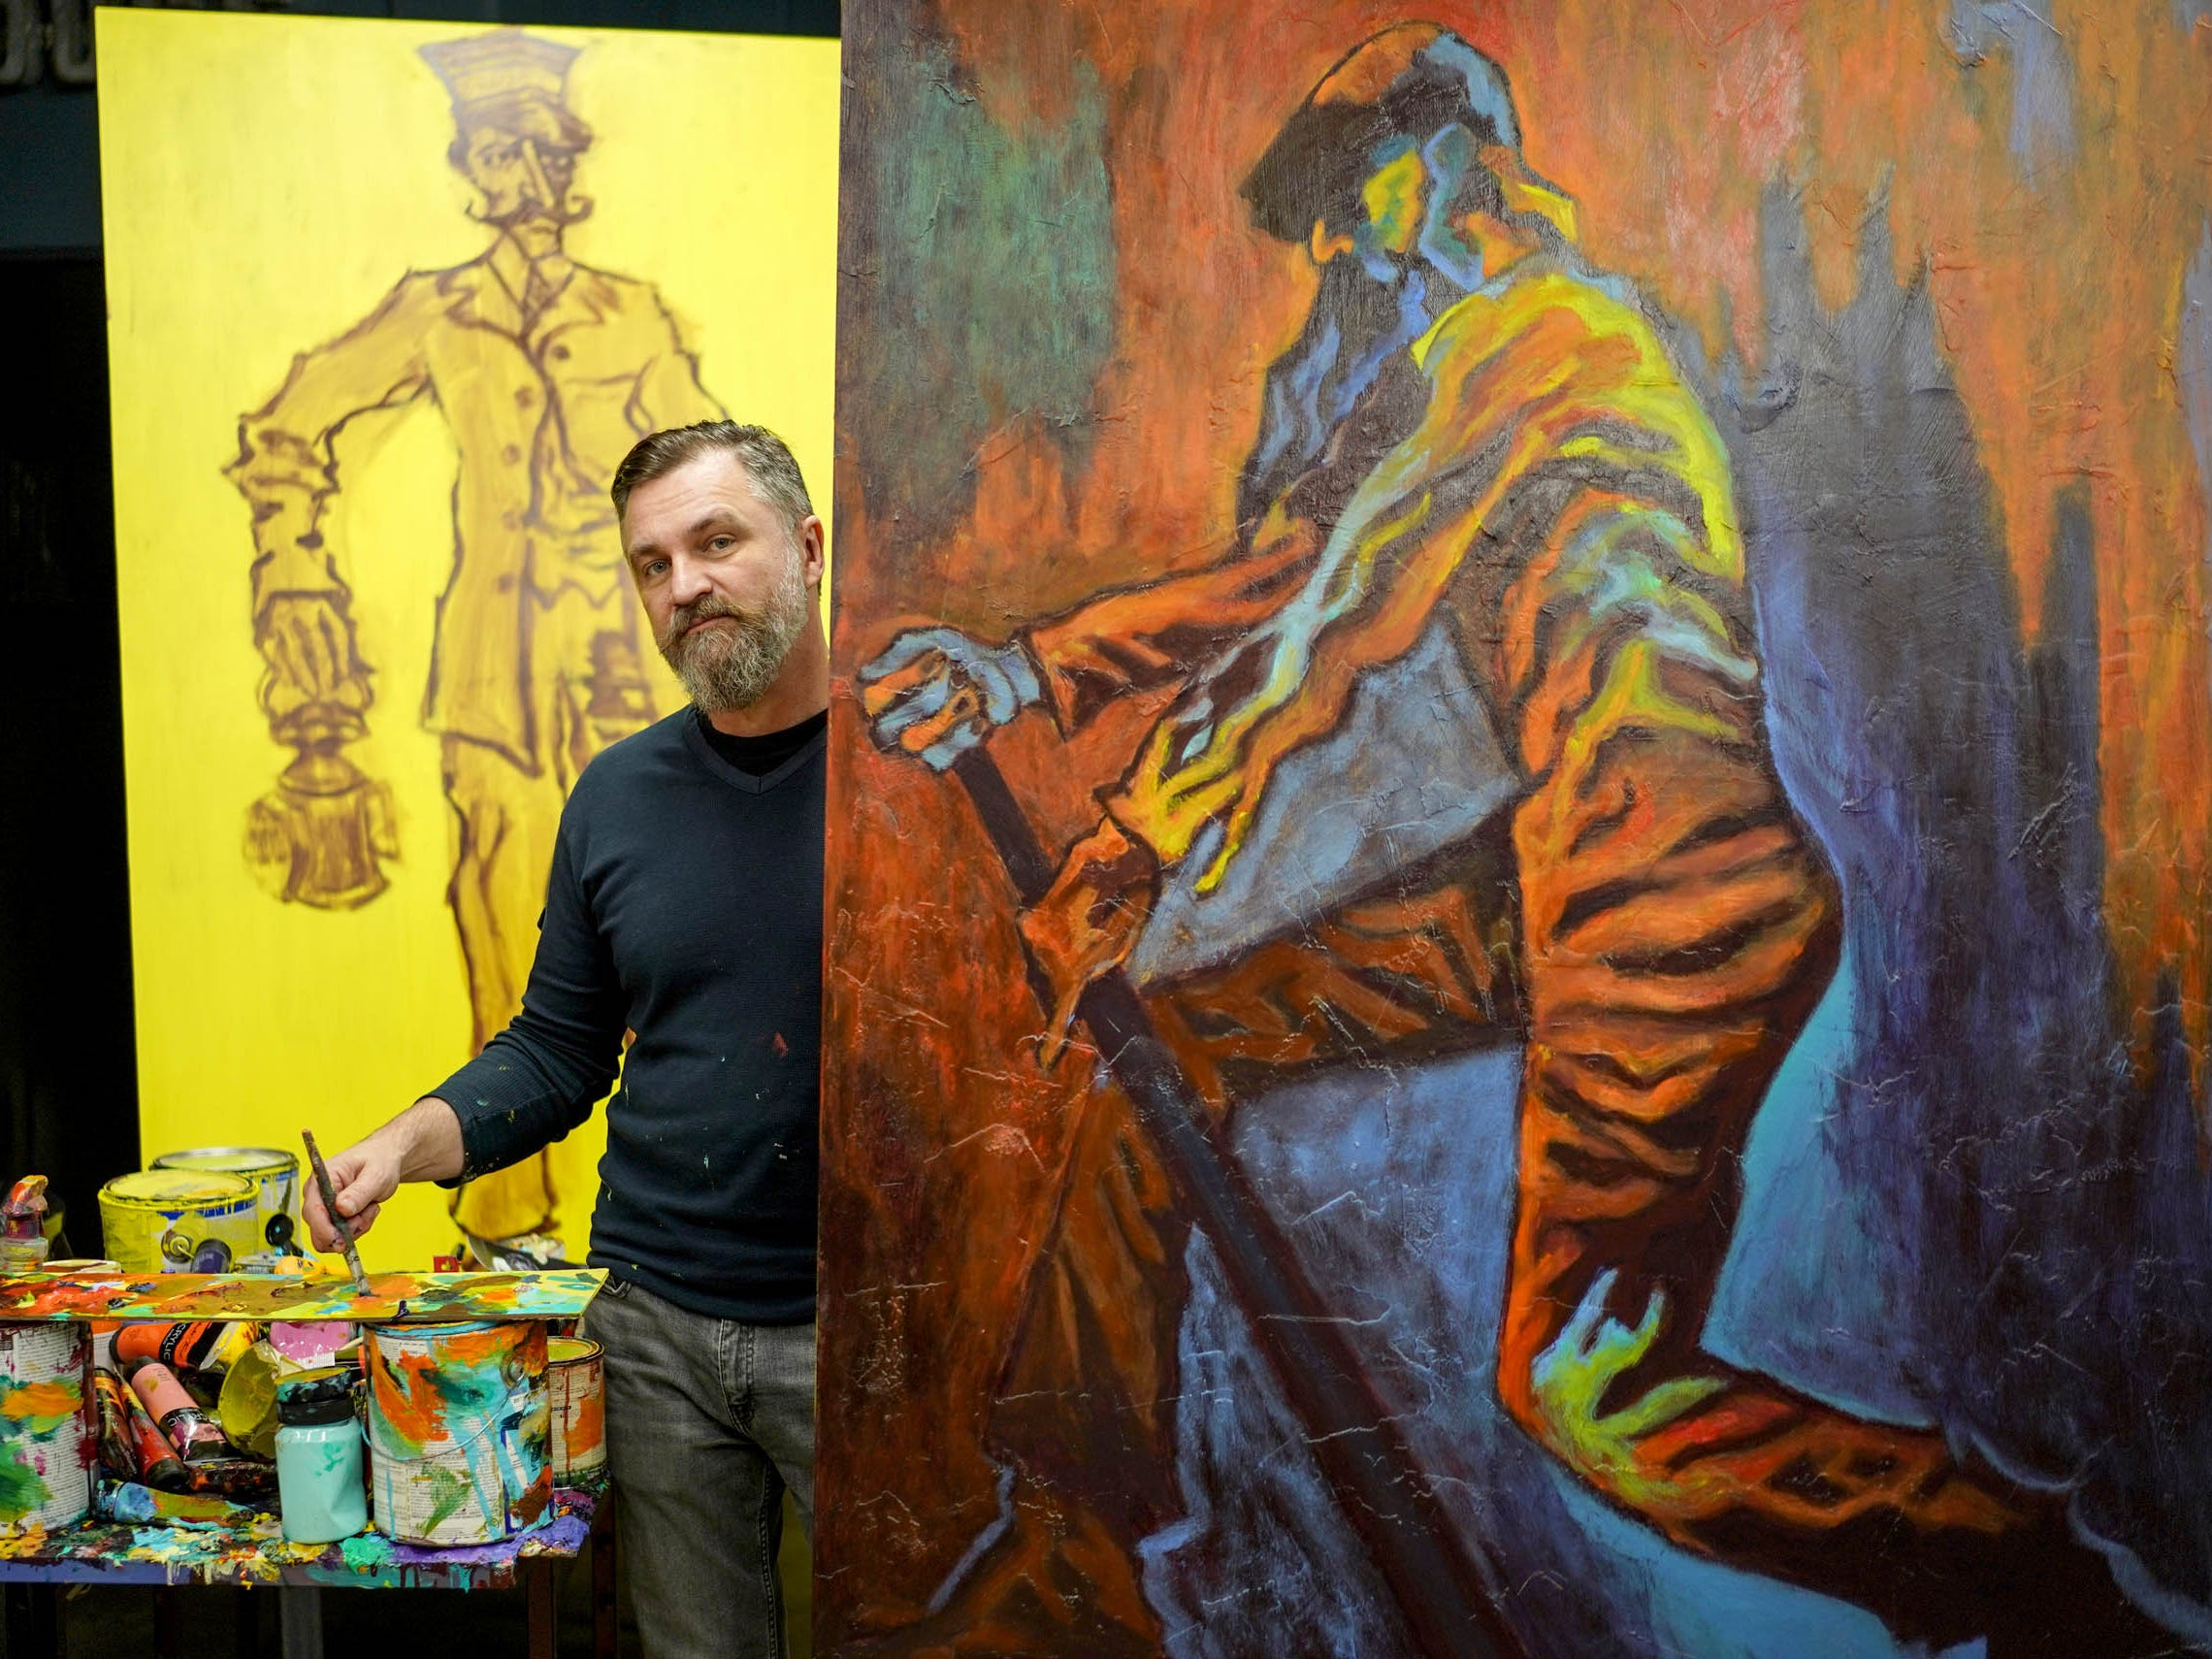 Artist Tony Roko next to his paintings at his studio in Plymouth on Friday, October 12, 2018.